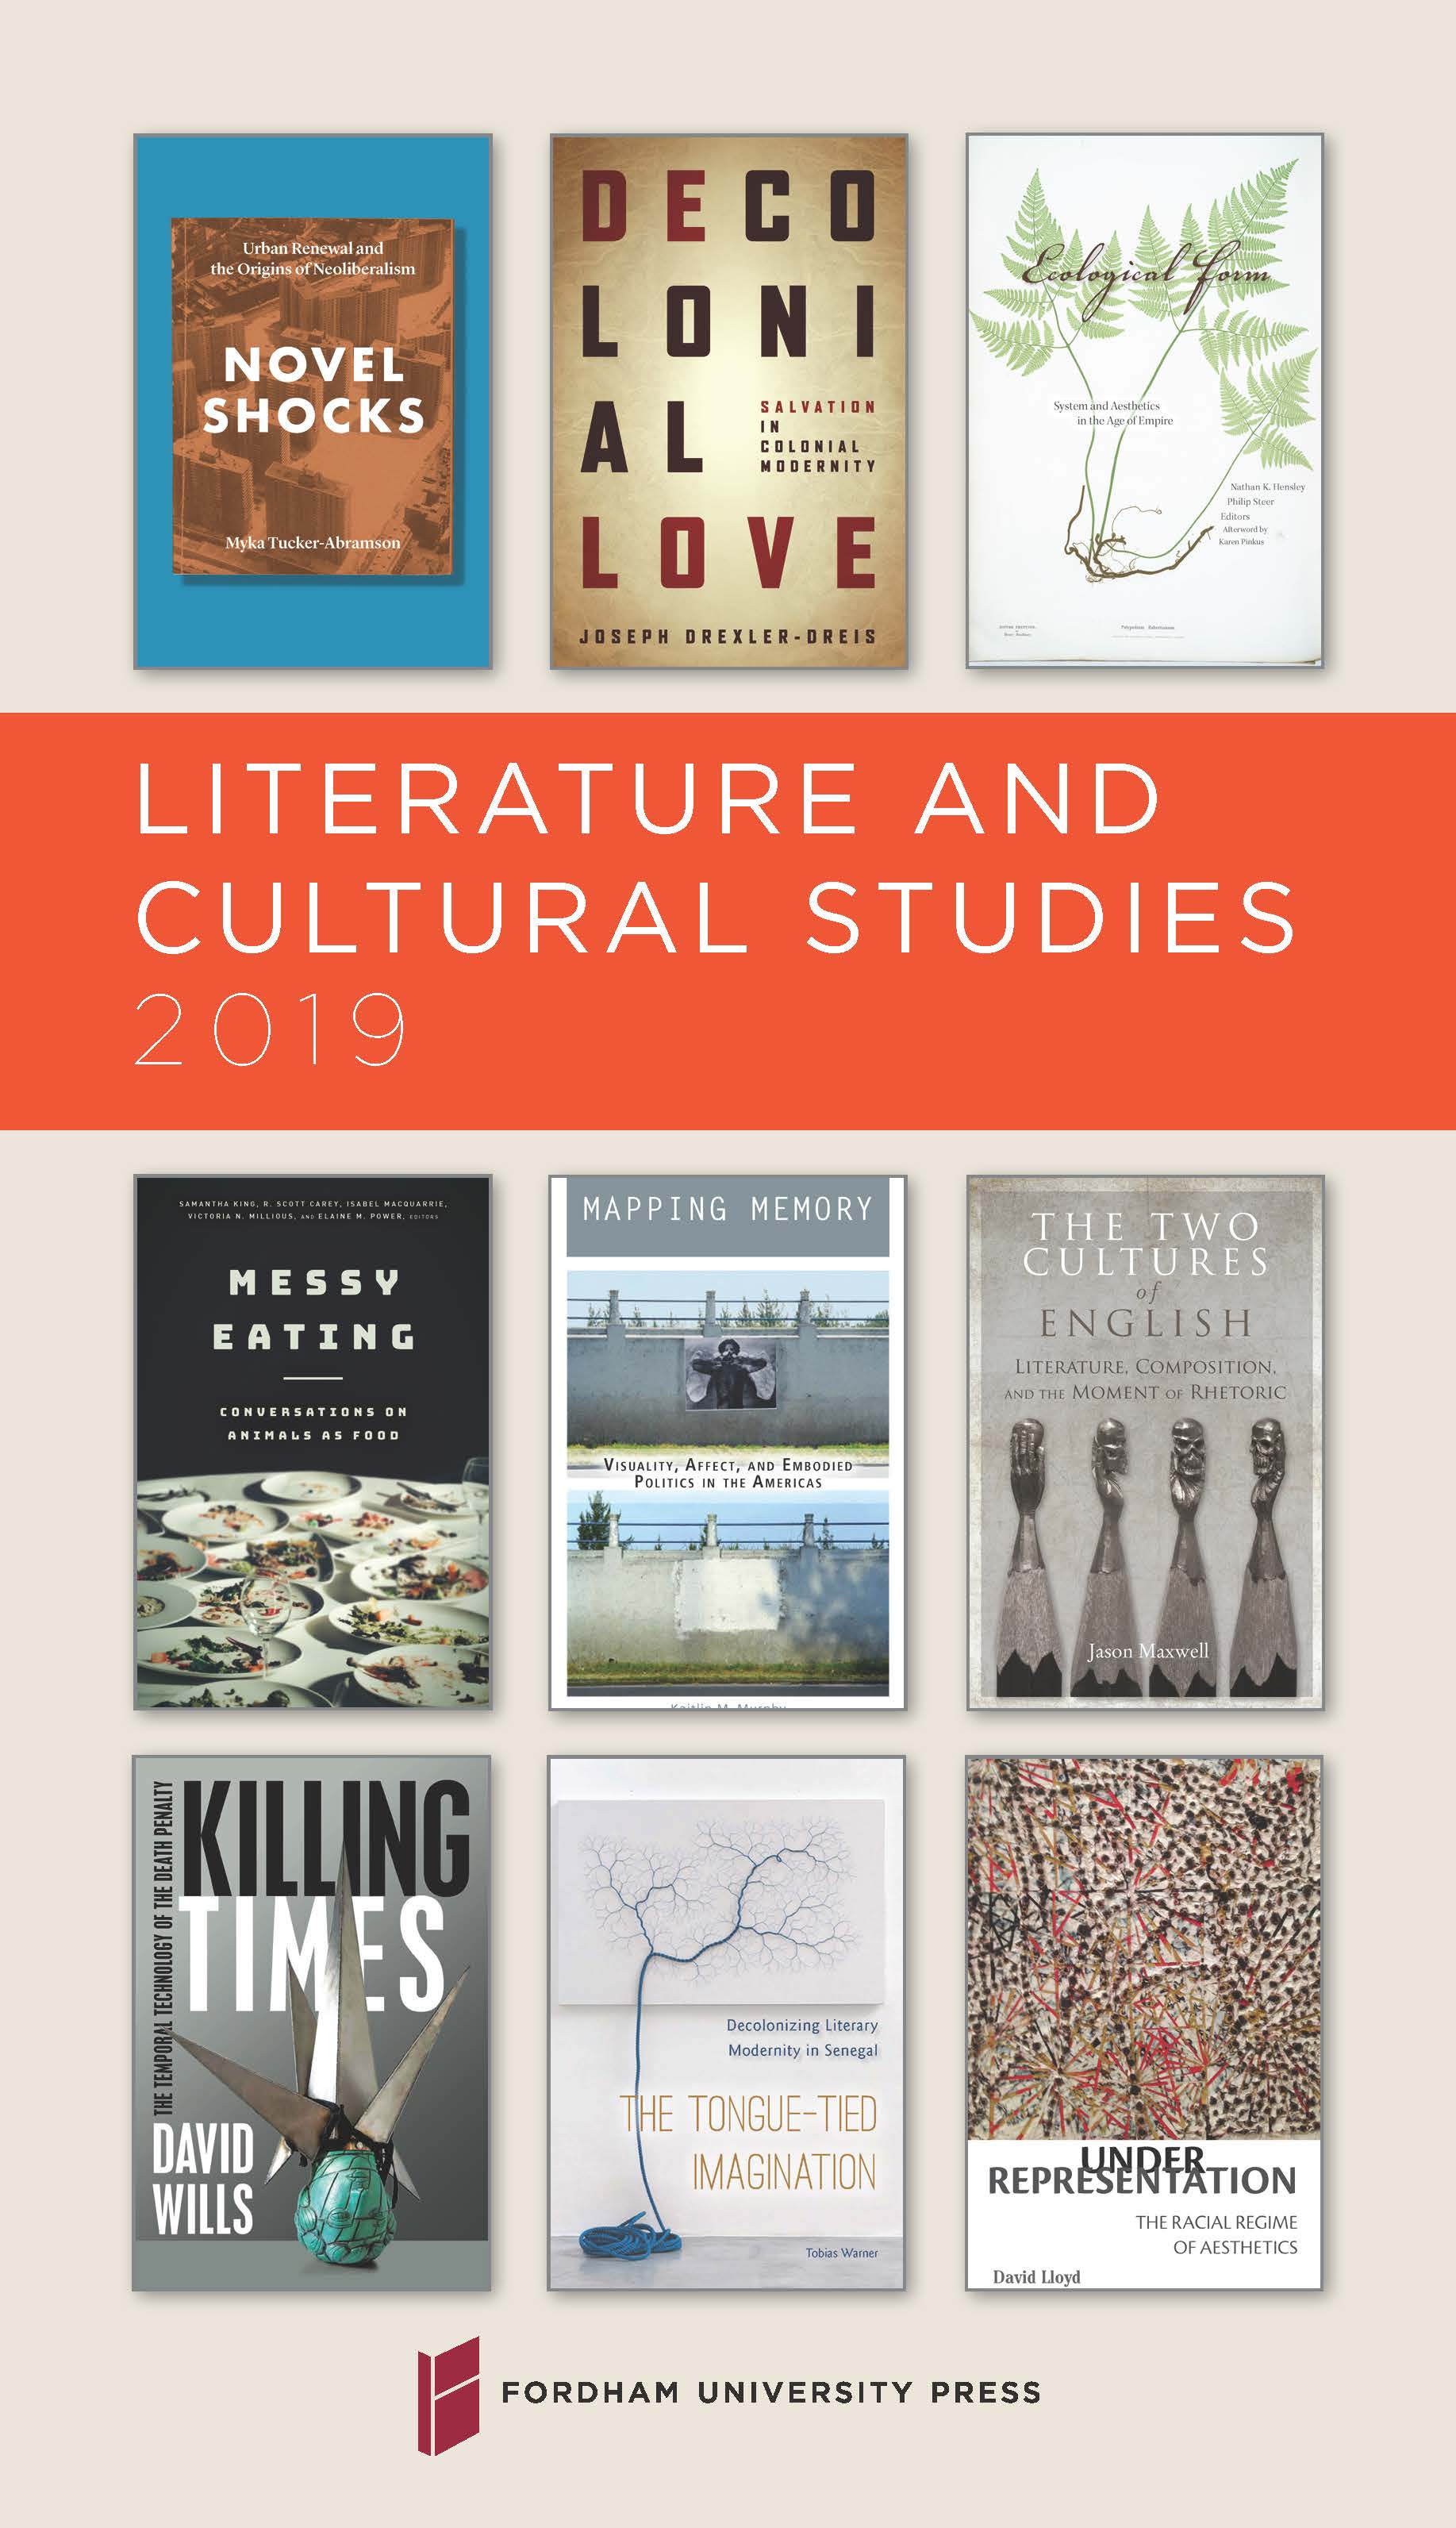 Literature and Cultural Studies 2019